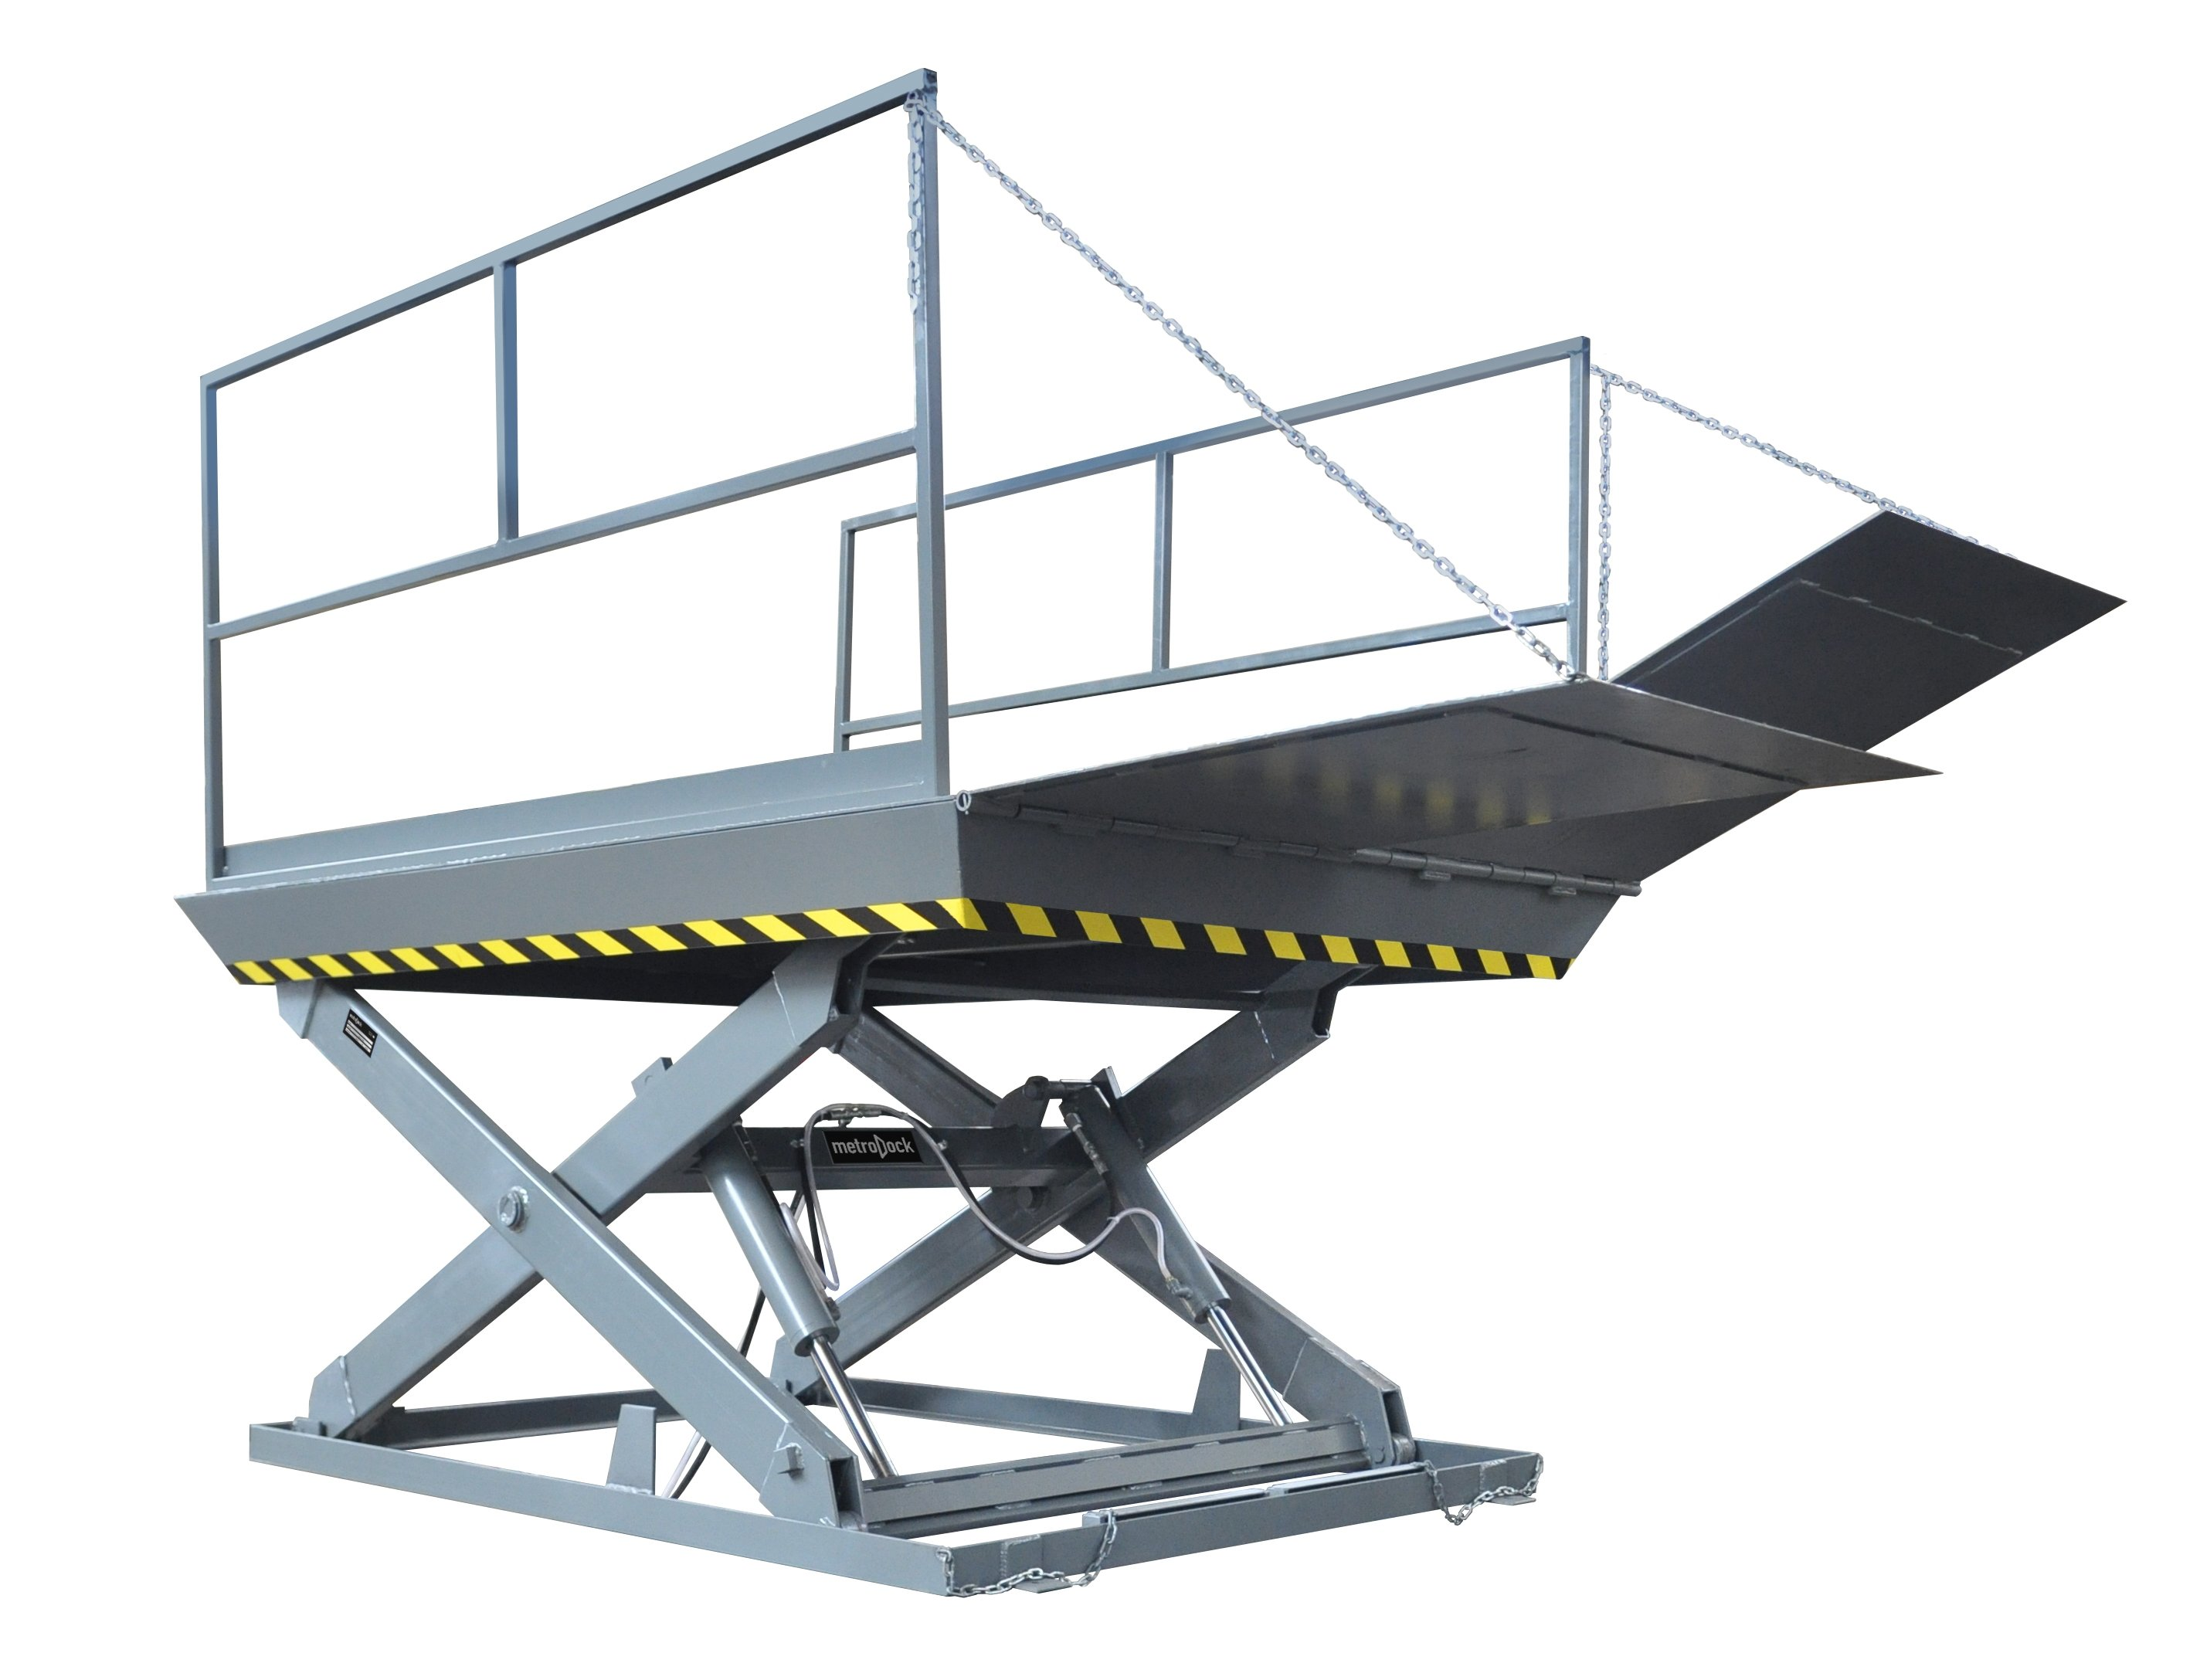 5 Safety Rules on Operating Scissor Lifts